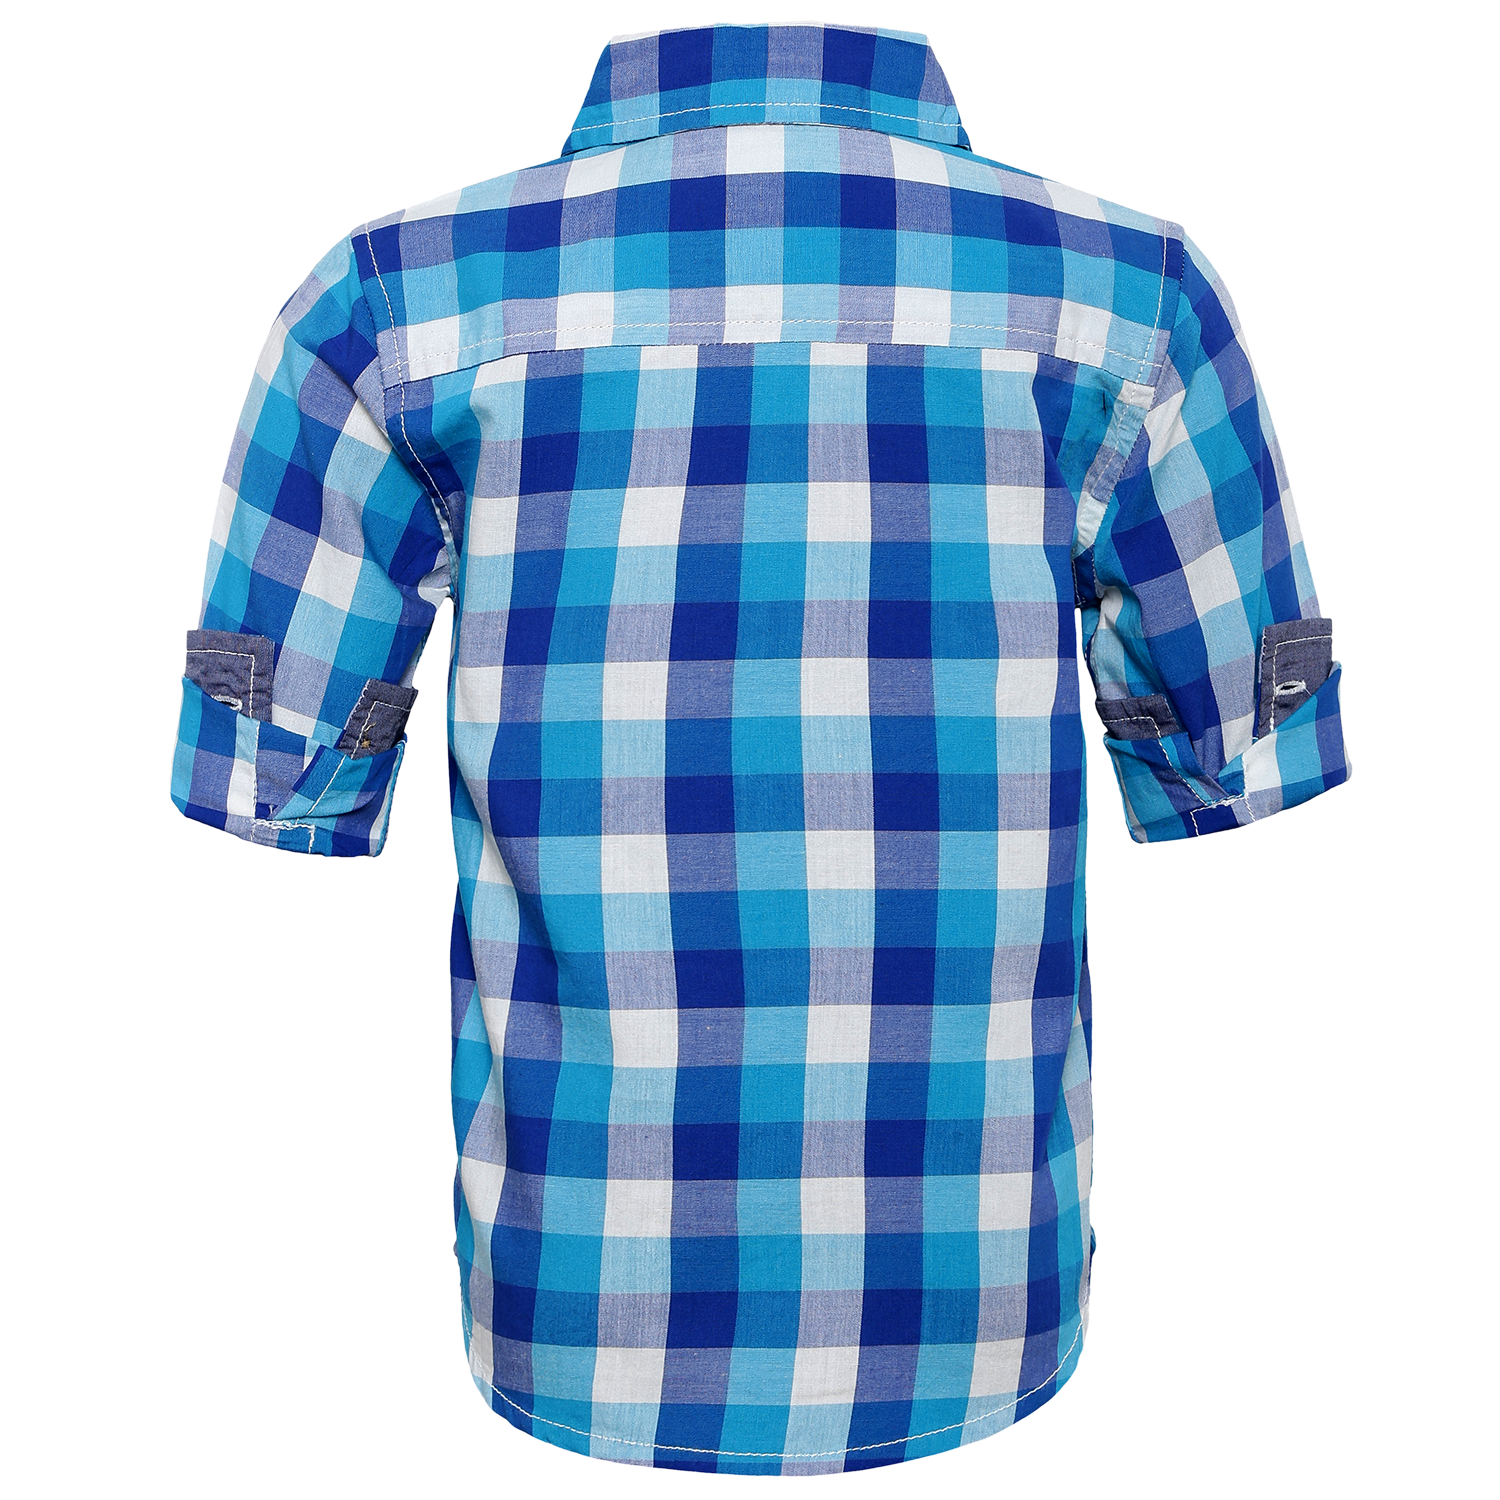 Toddler Boy 'Checkmate'  Roll Up Shirt